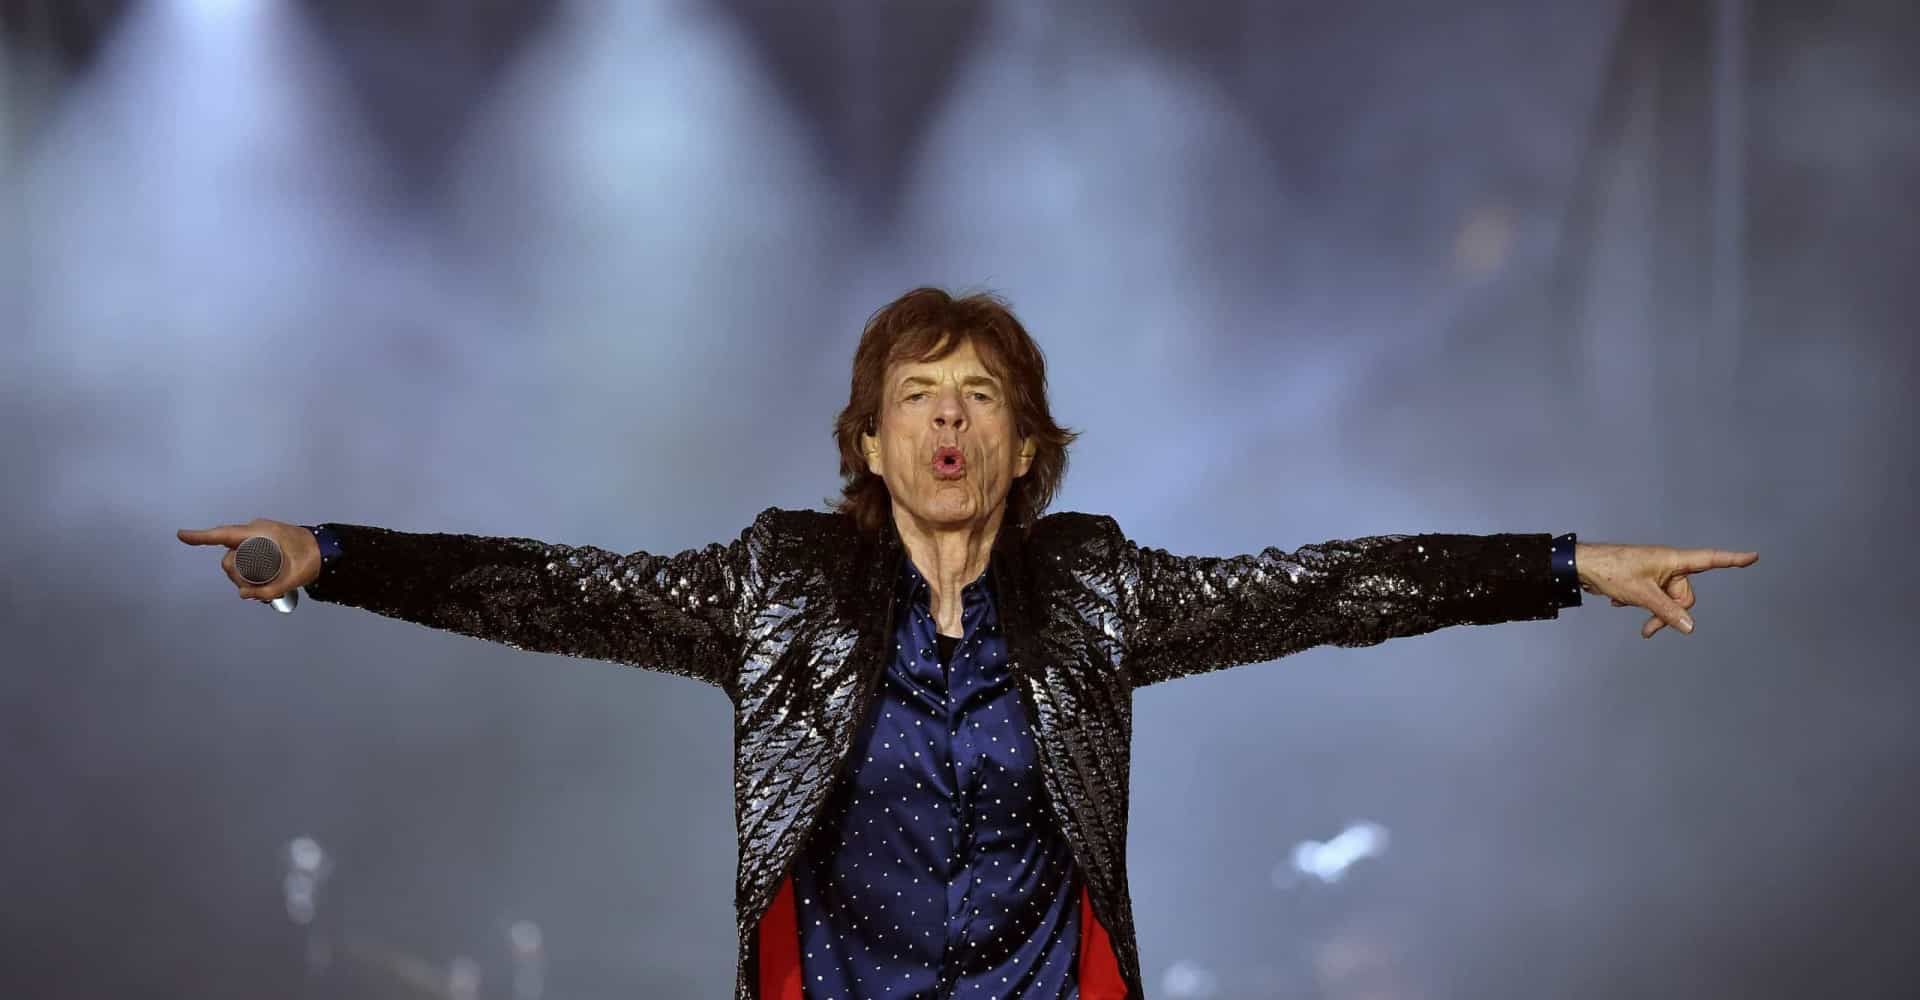 Mick is back and still moving like Jagger